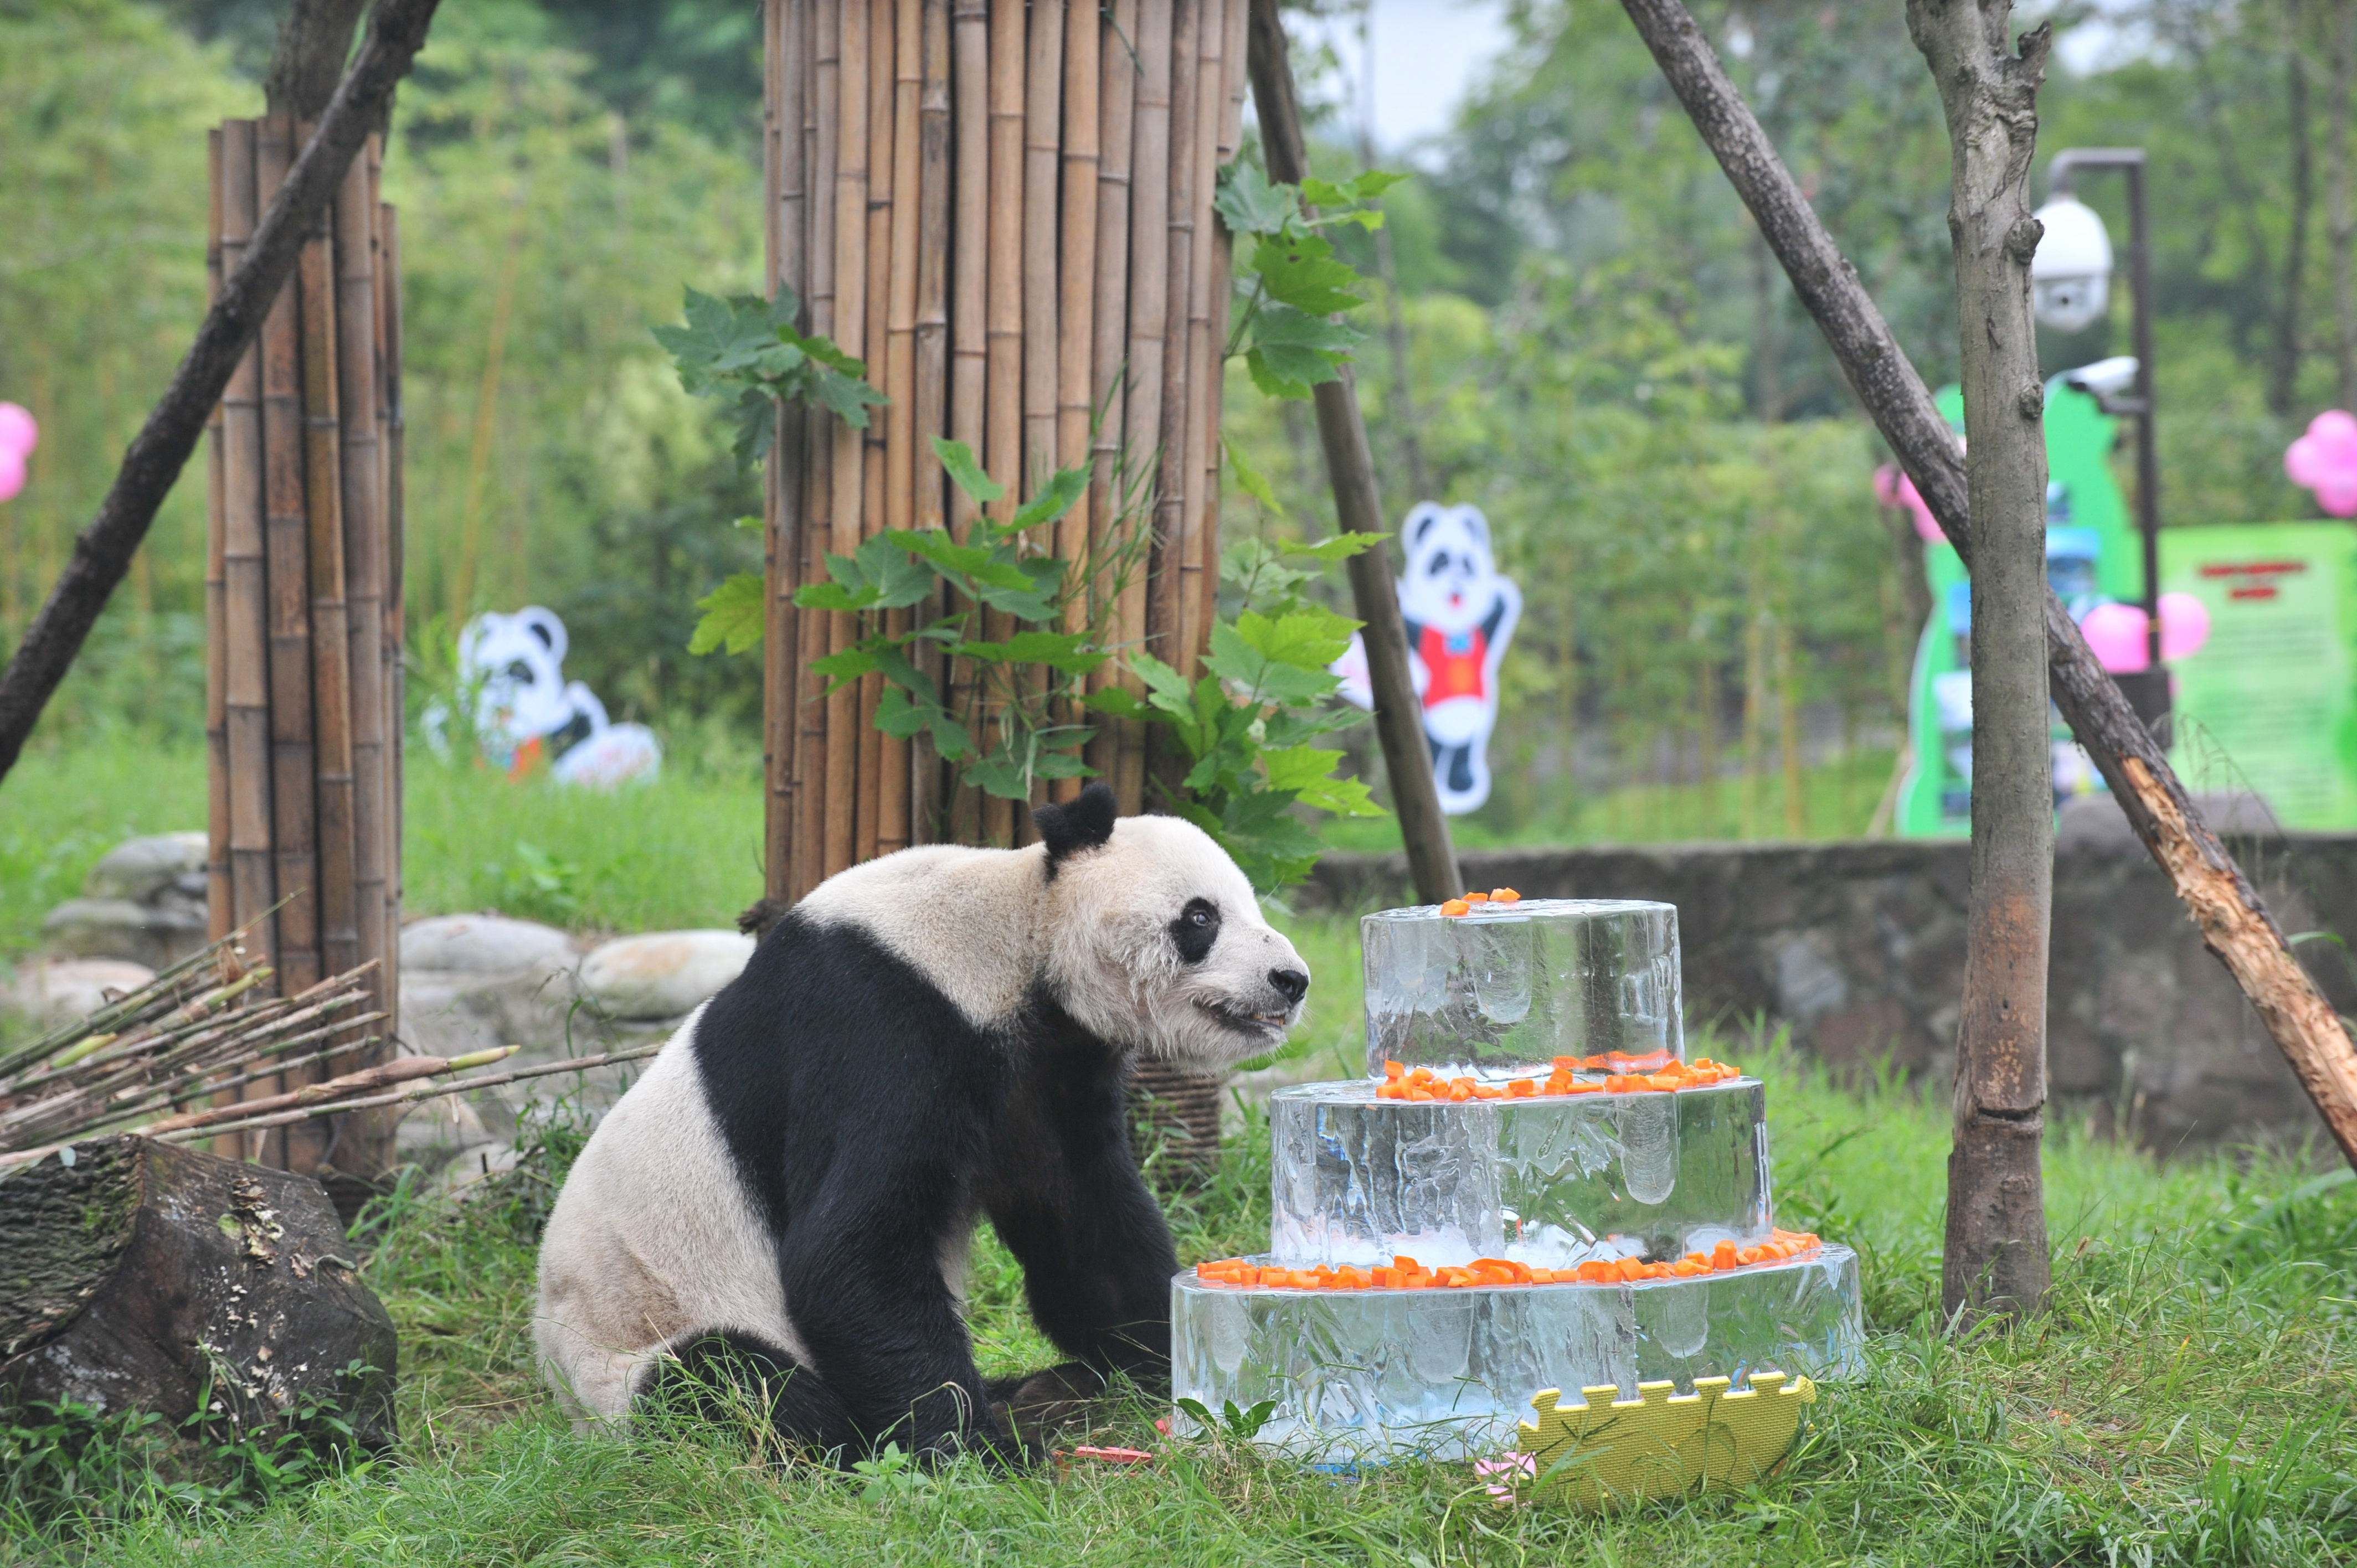 Giant panda Pan Pan sits near a frozen cake during its 30th birthday celebration at the China Conservation and Research Center for the Giant Panda in Dujiangyan, China, Sept. 21, 2015.